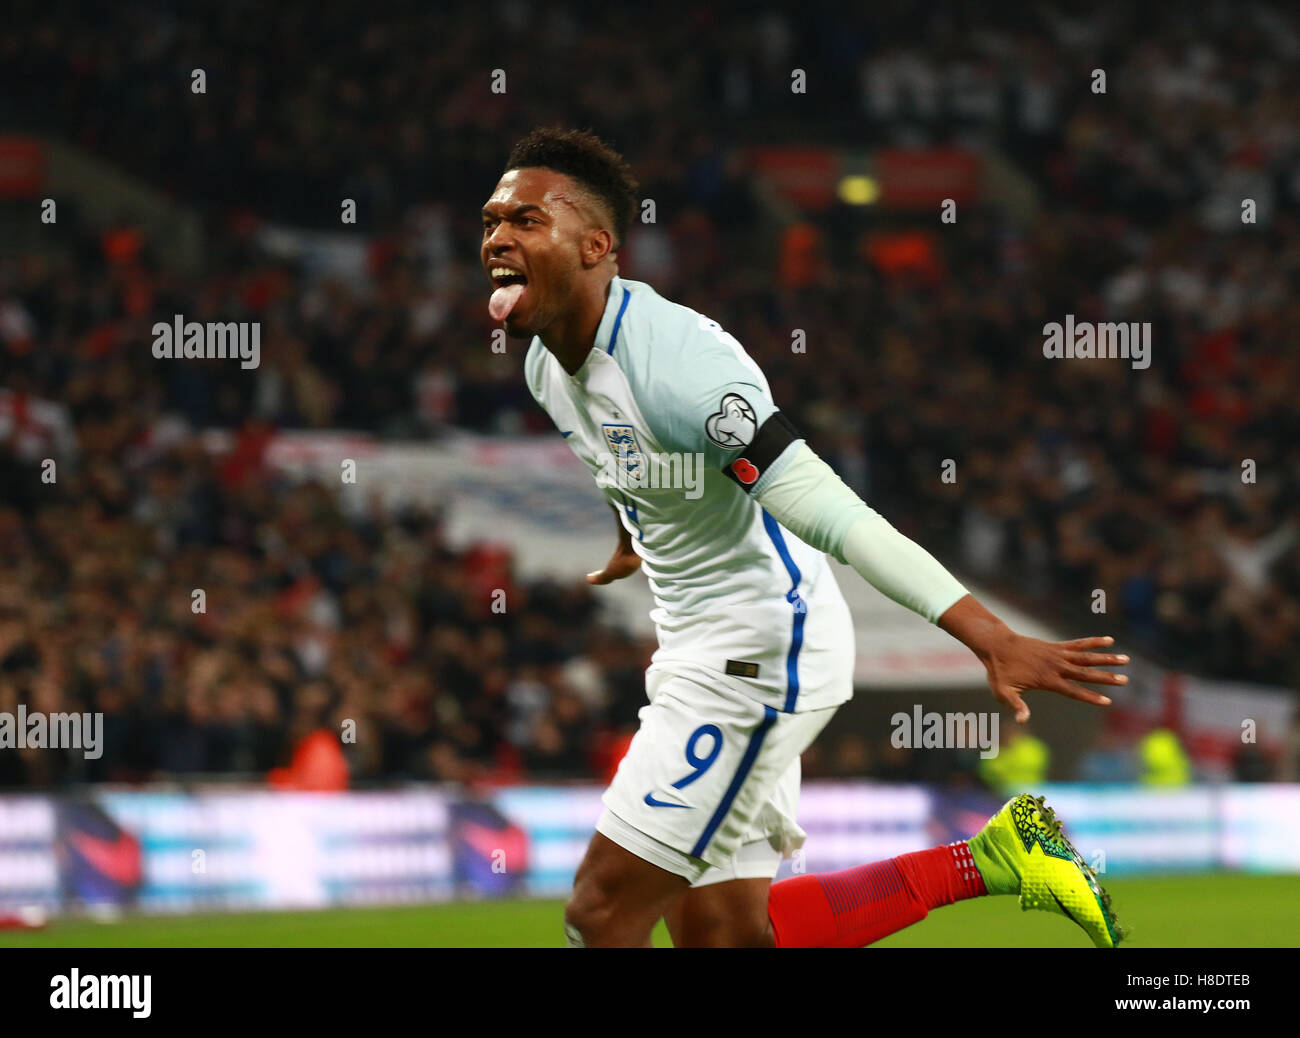 Londres, Royaume-Uni. 11 novembre, 2016. L'Angleterre v Ecosse - Coupe du Monde FIFA 2018 qualificatif . London, Photo Stock